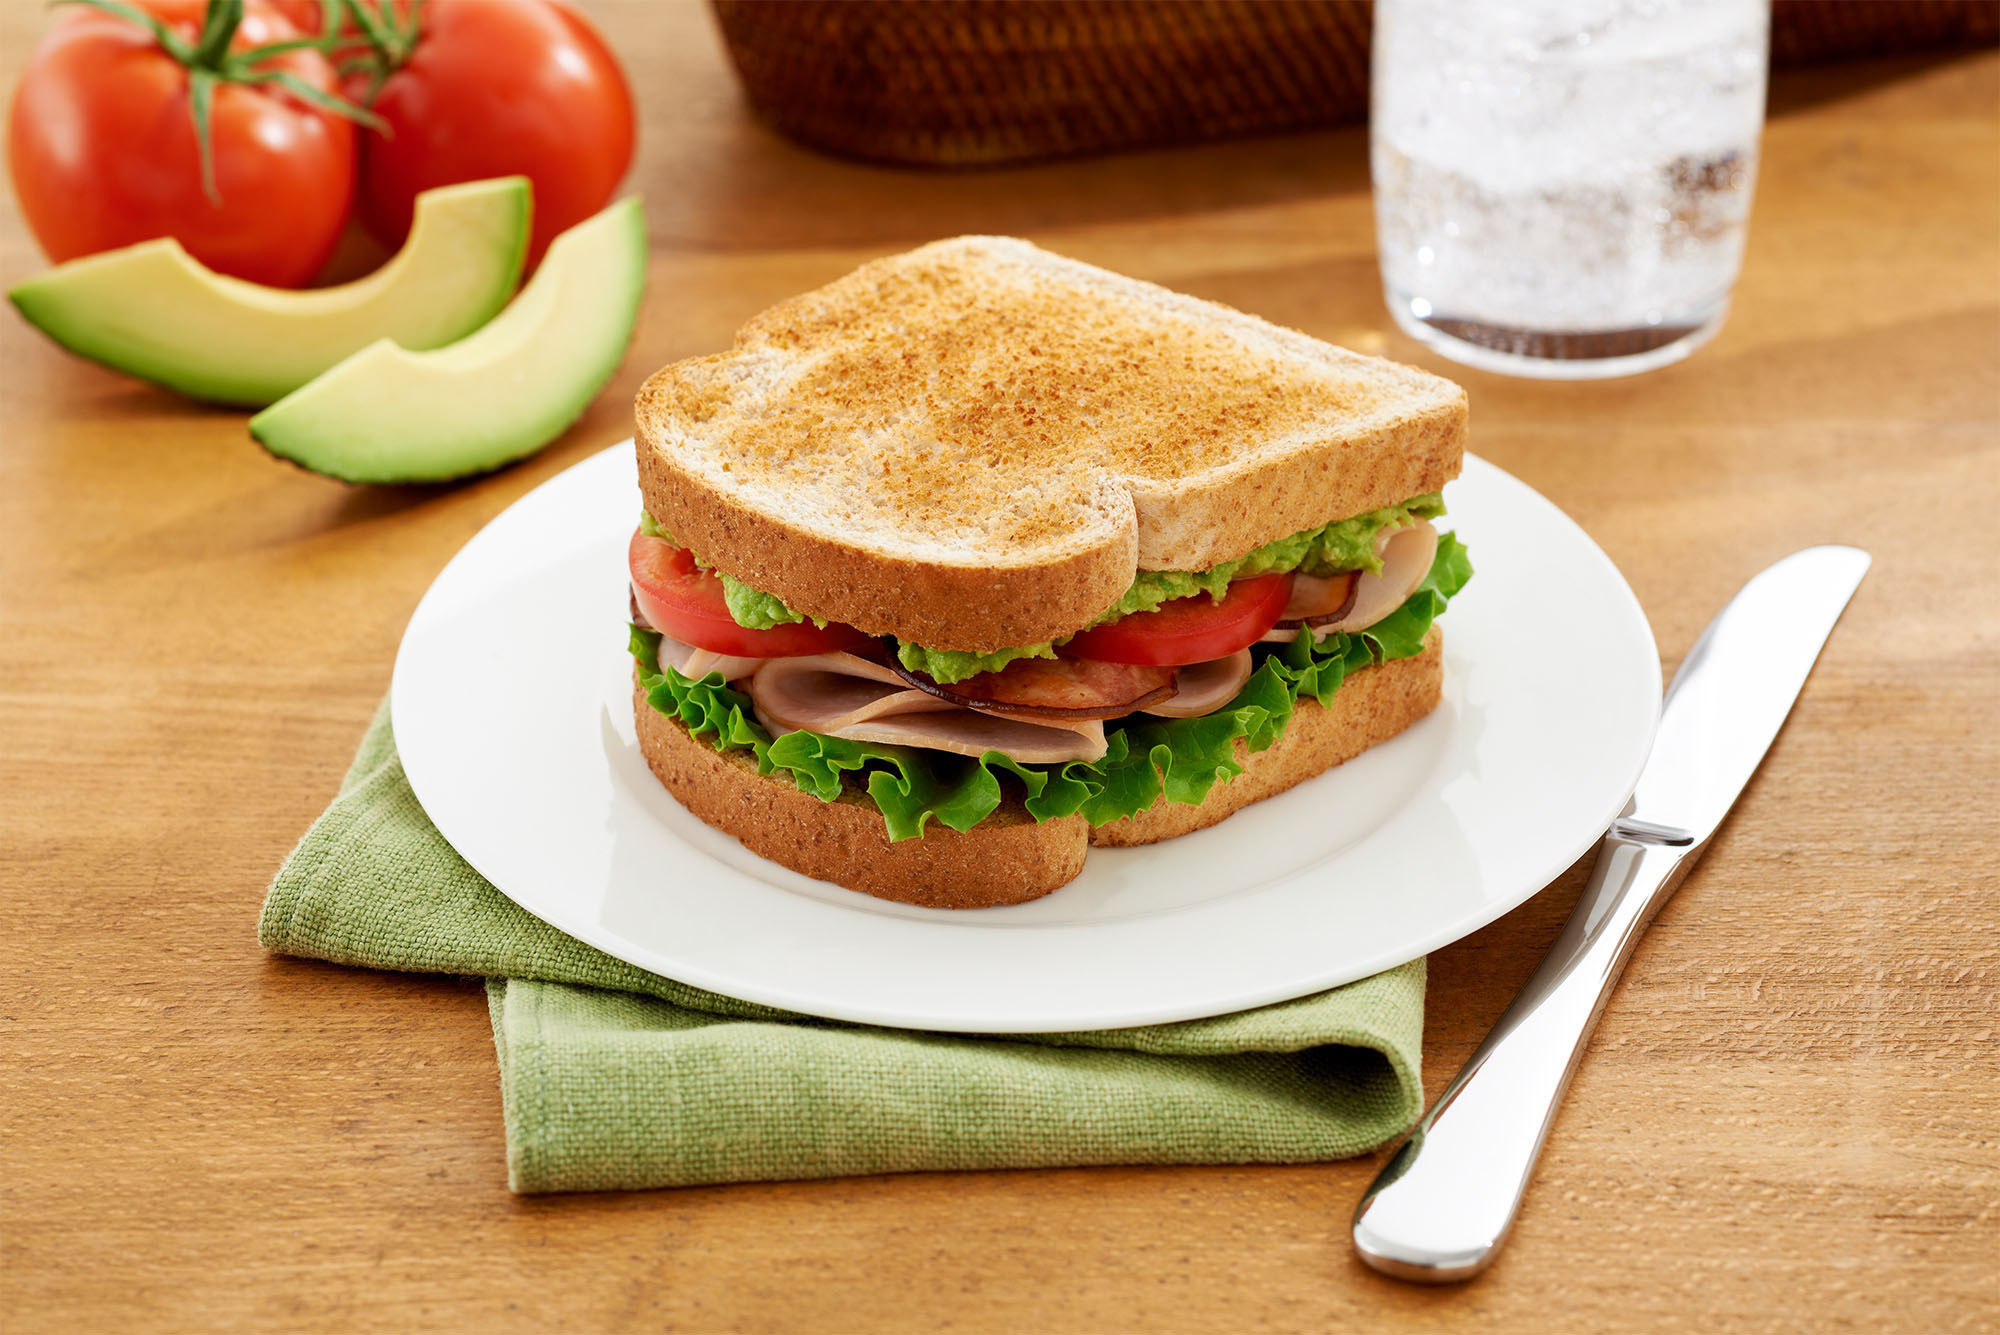 Healthy Sandwich Bread  Get nutrition naturally in 2013 with these classic